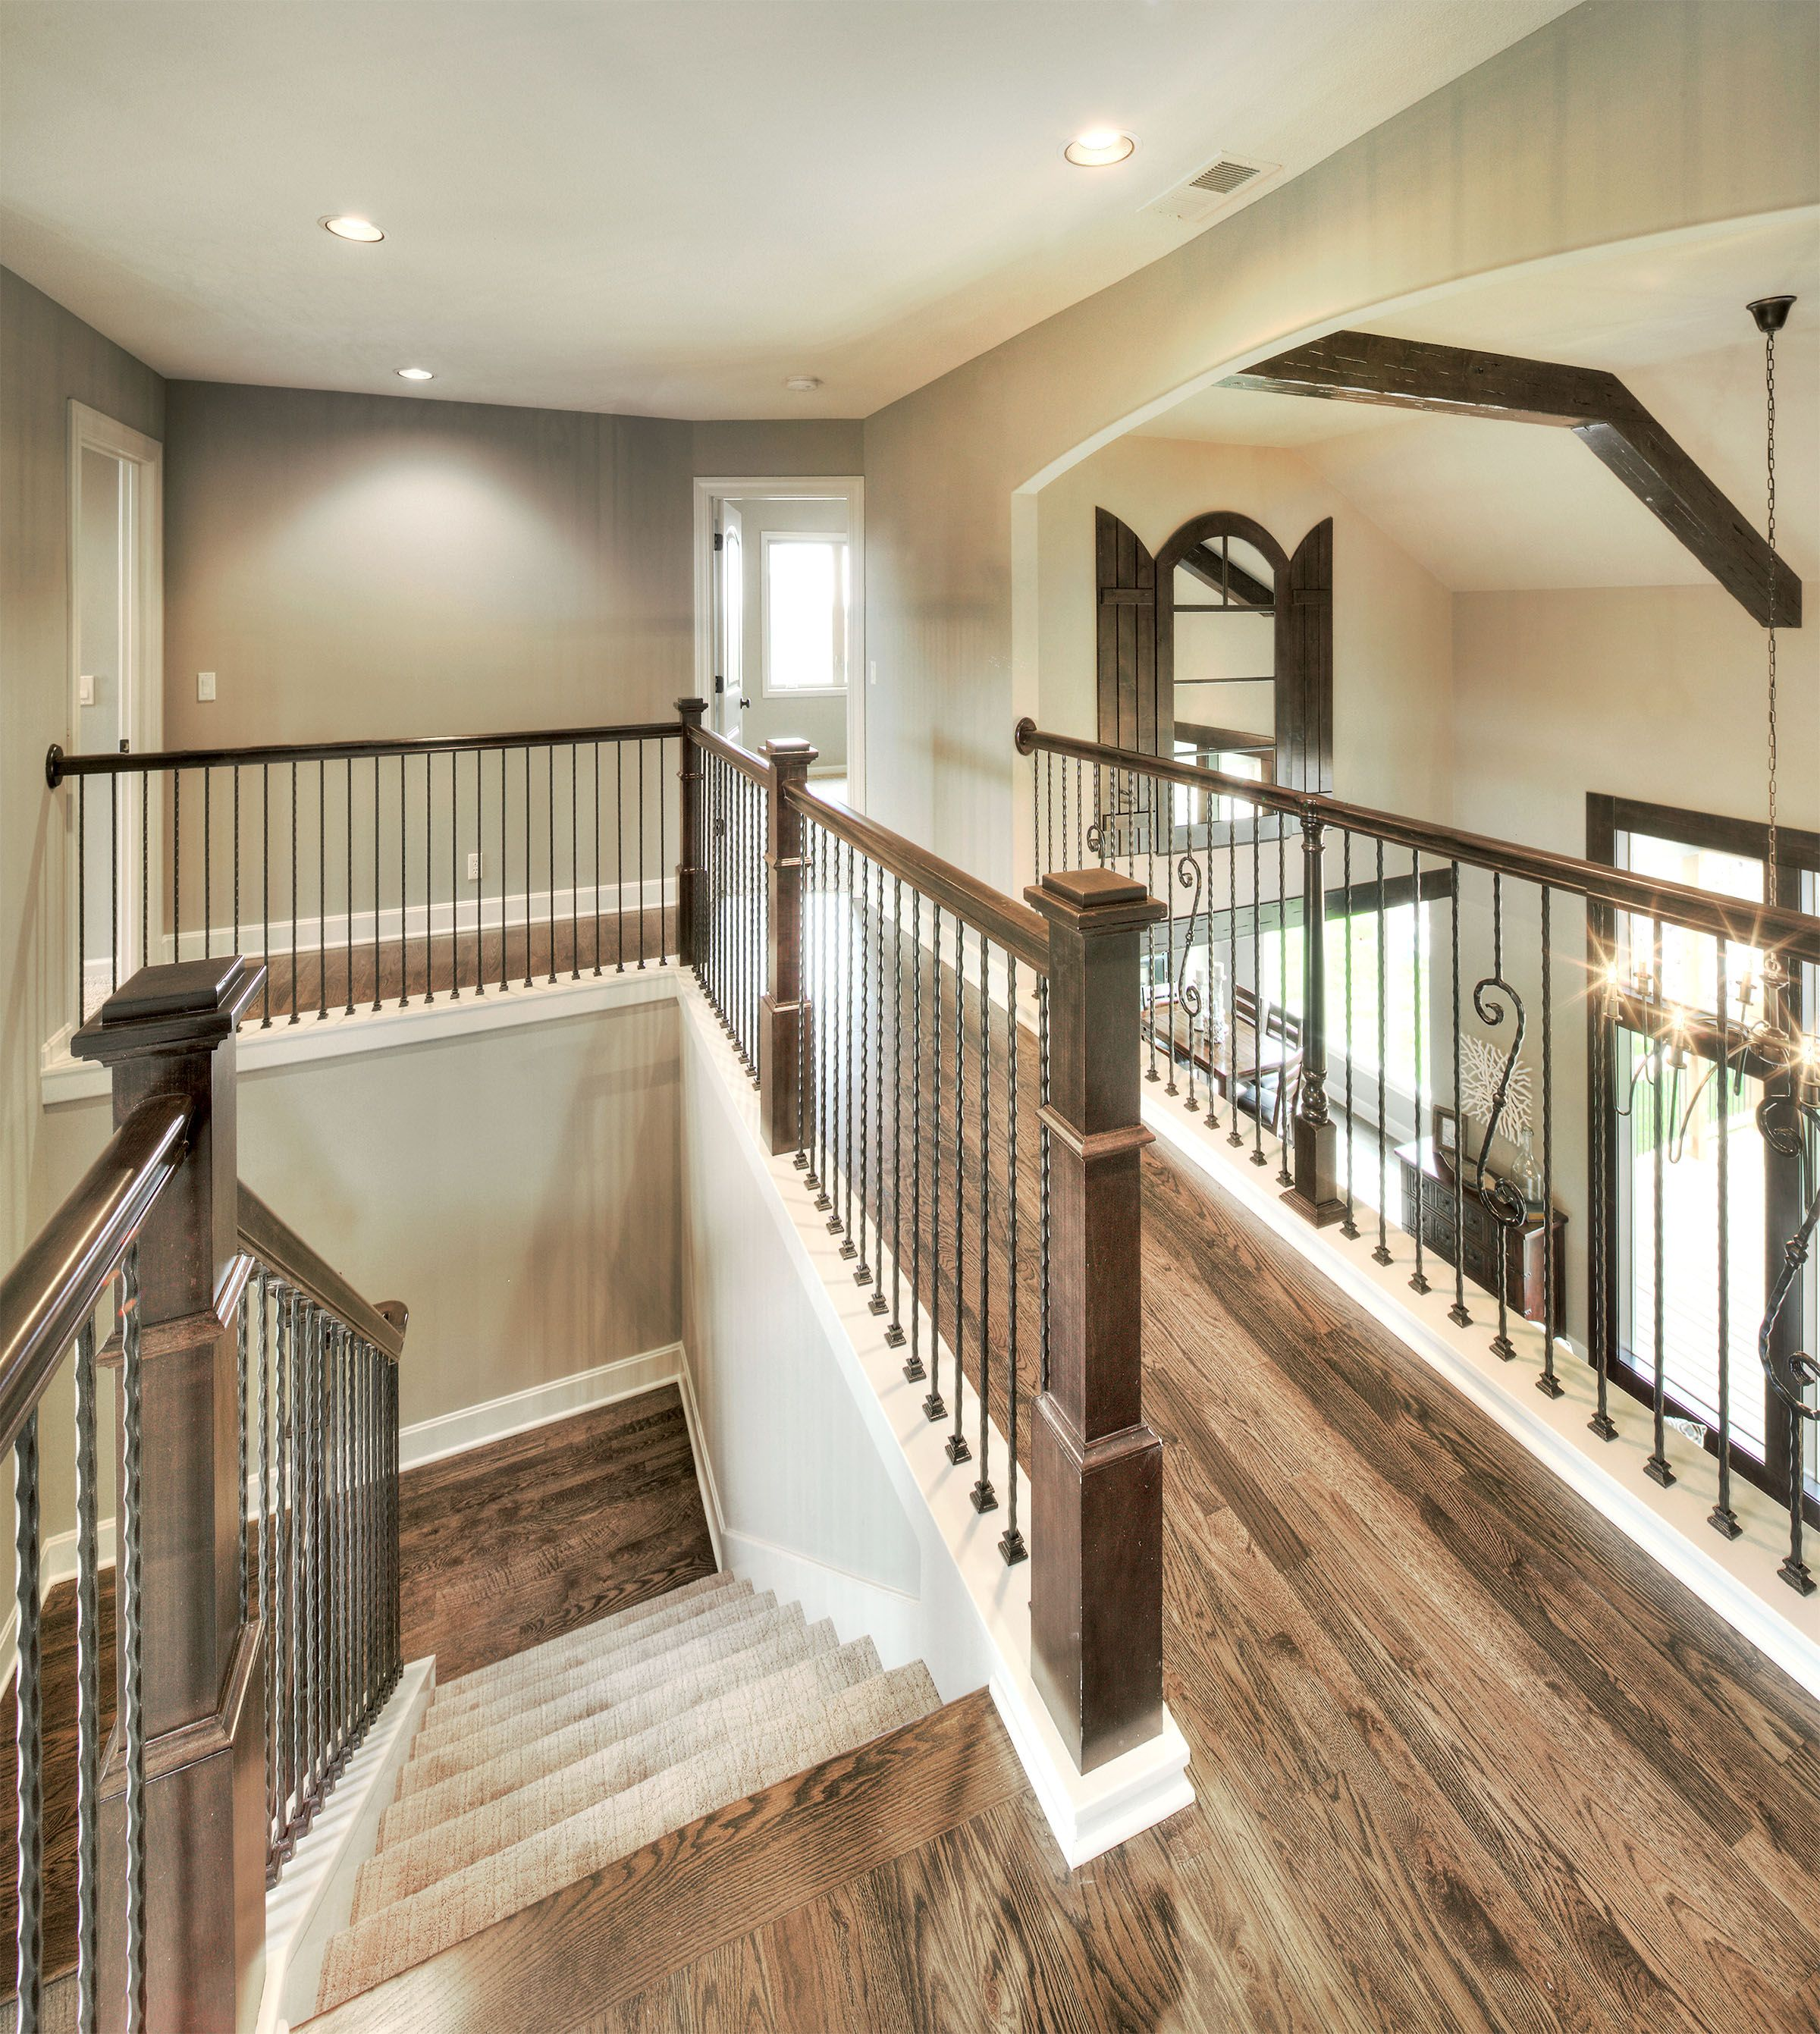 Superbe Hardwood Floors: Upstairs Hall Hardwoods Http://www.bickimerhomes.com/